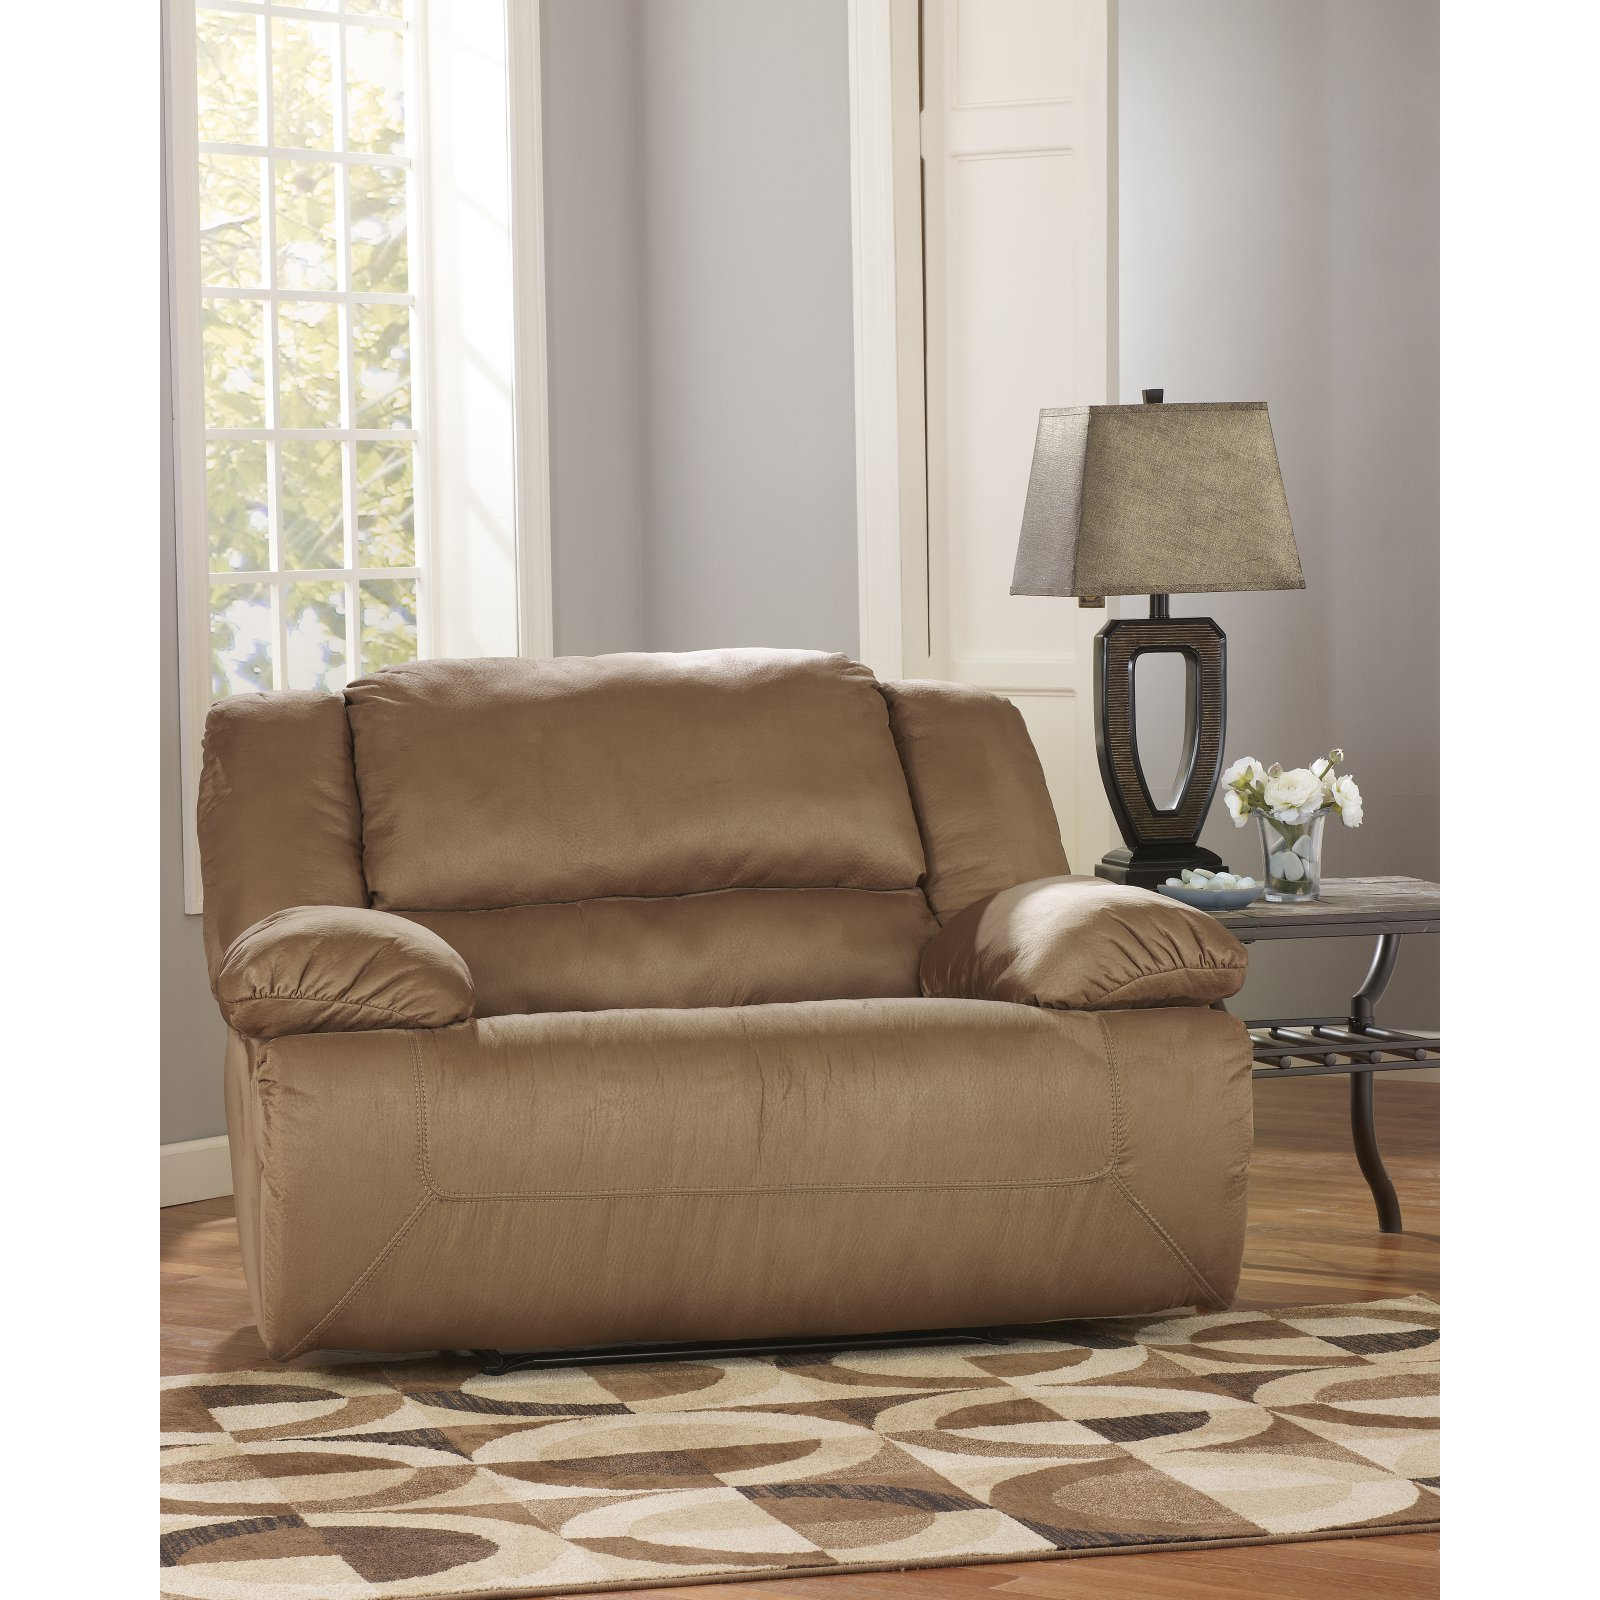 Signature Design by Ashley Hogan Oversized Recliner  sc 1 st  Walmart & Oversized Recliners islam-shia.org